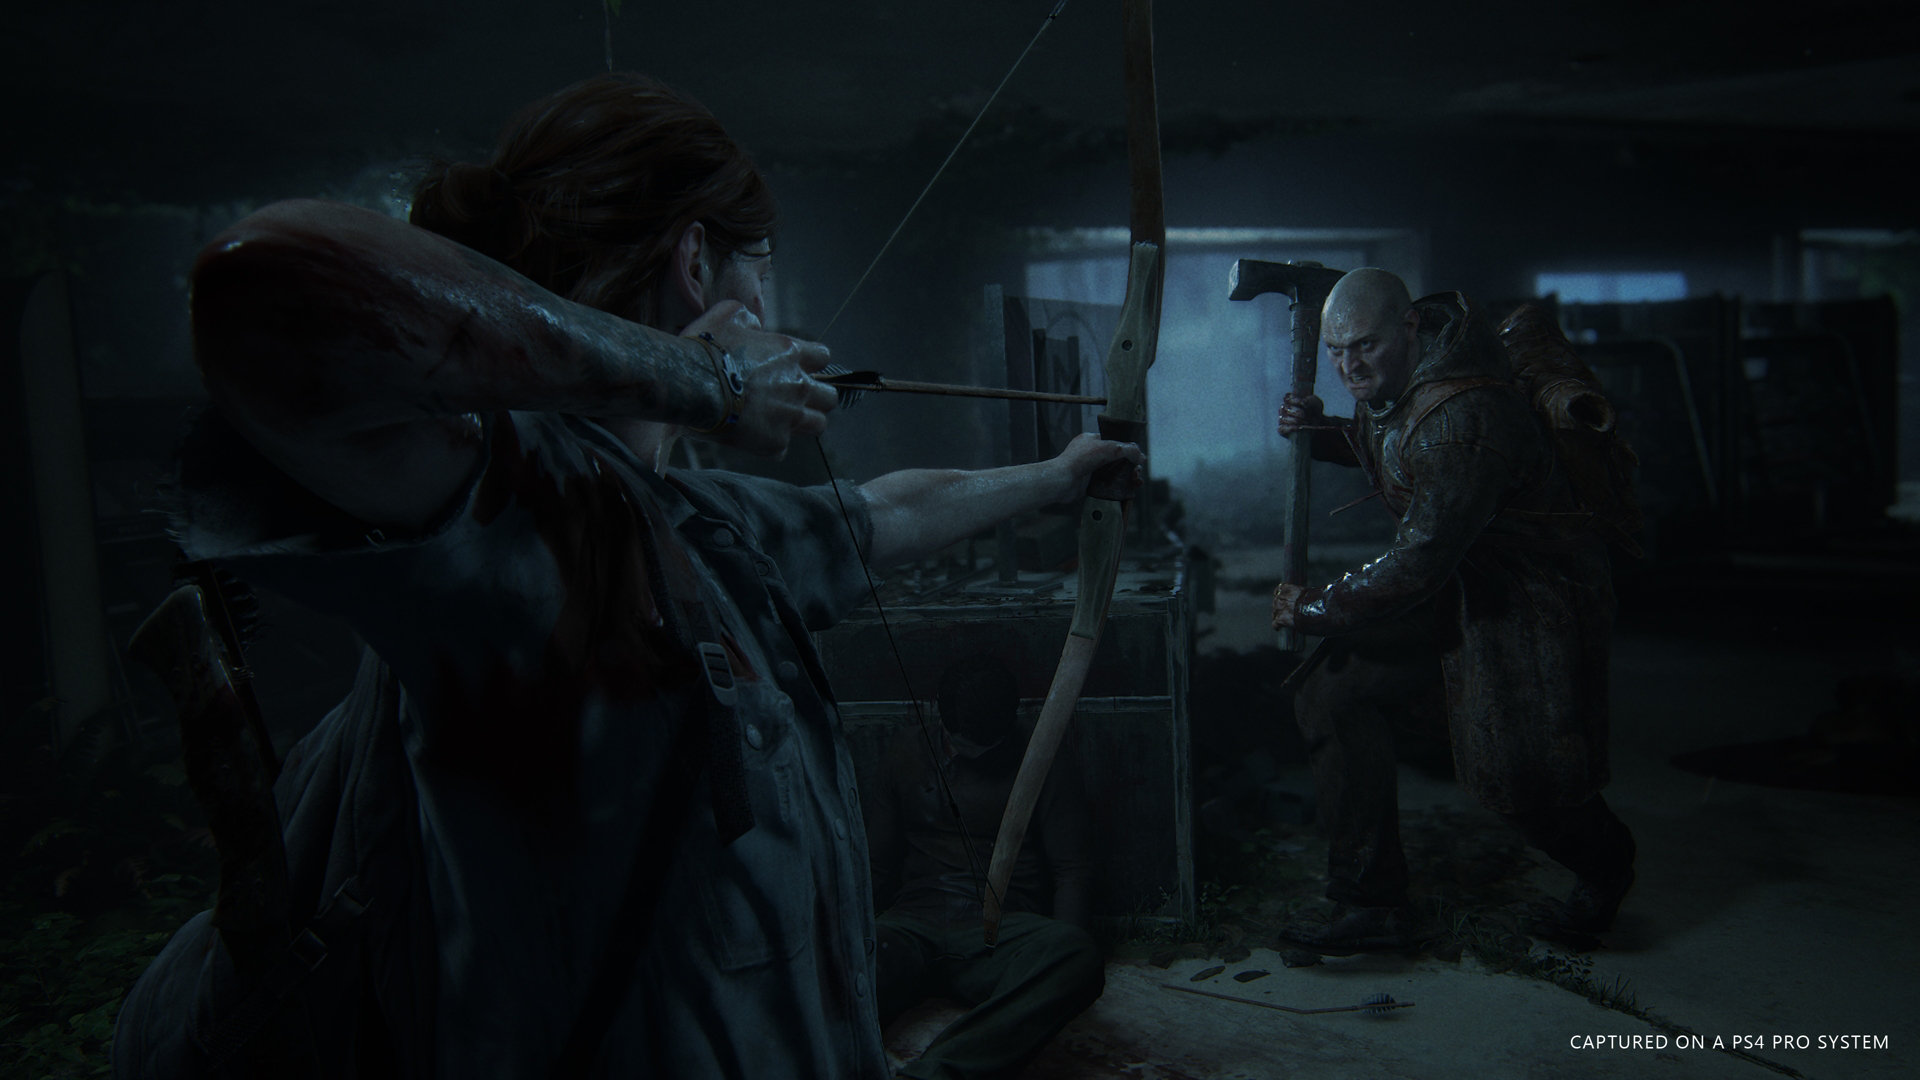 Ps5 Will The Last Of Us Part Ii Release On Playstation 5